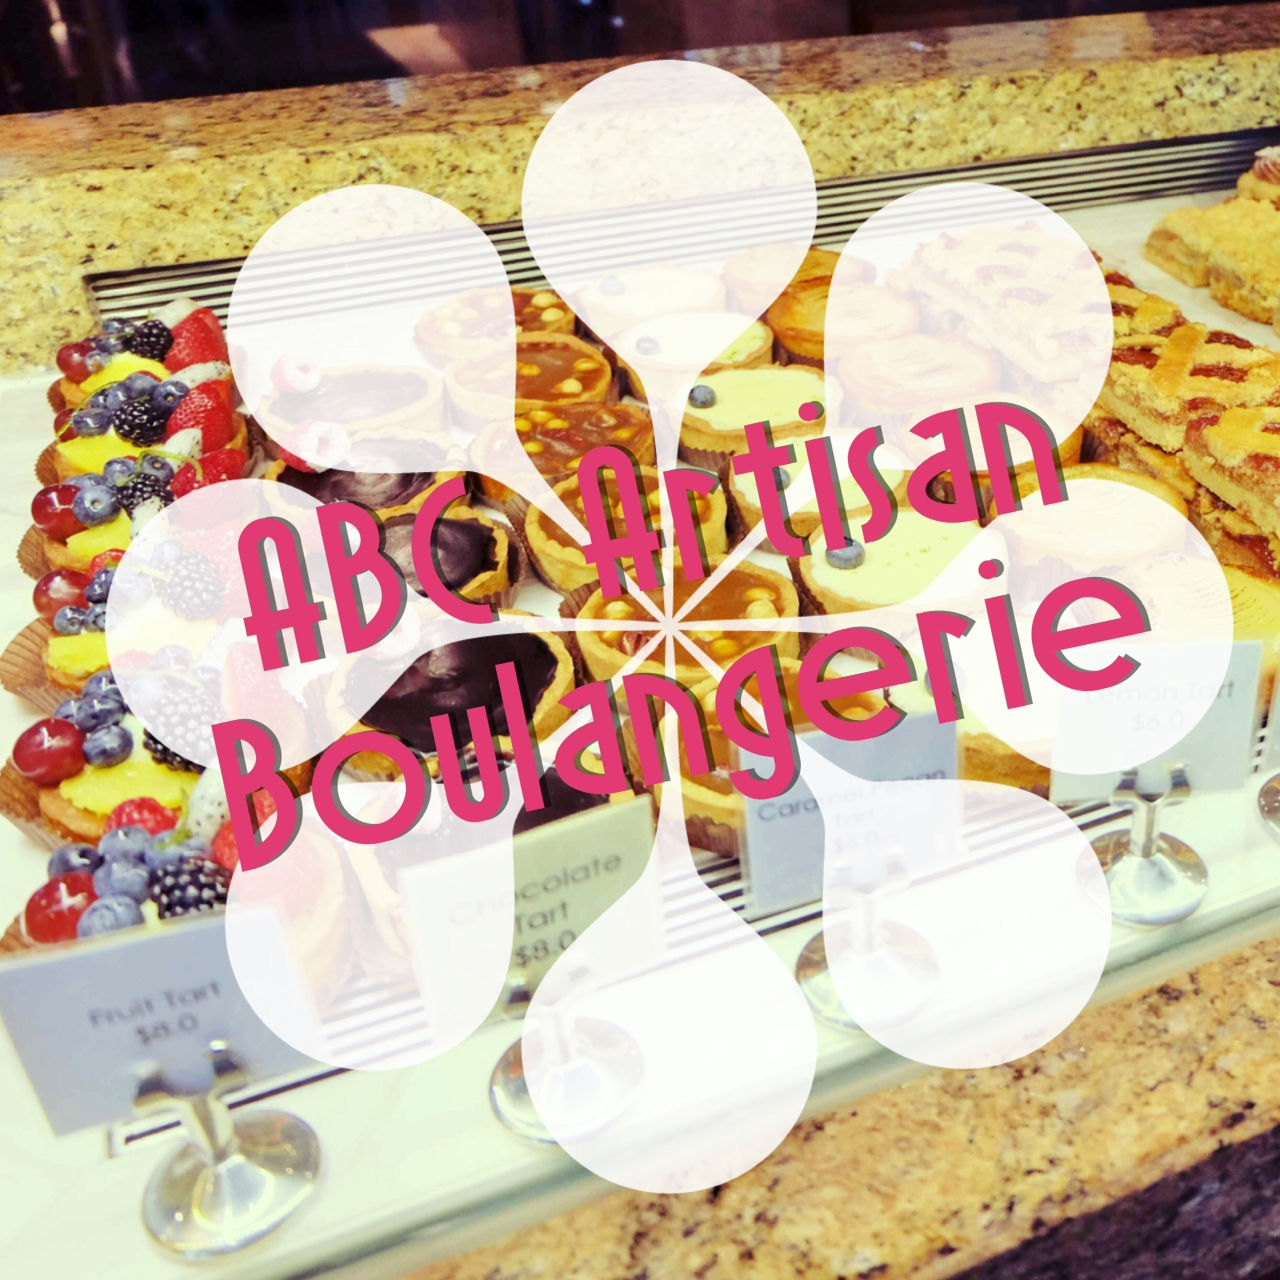 ABC Artisan Boulangerie Co. ♥♥♥ Singapore